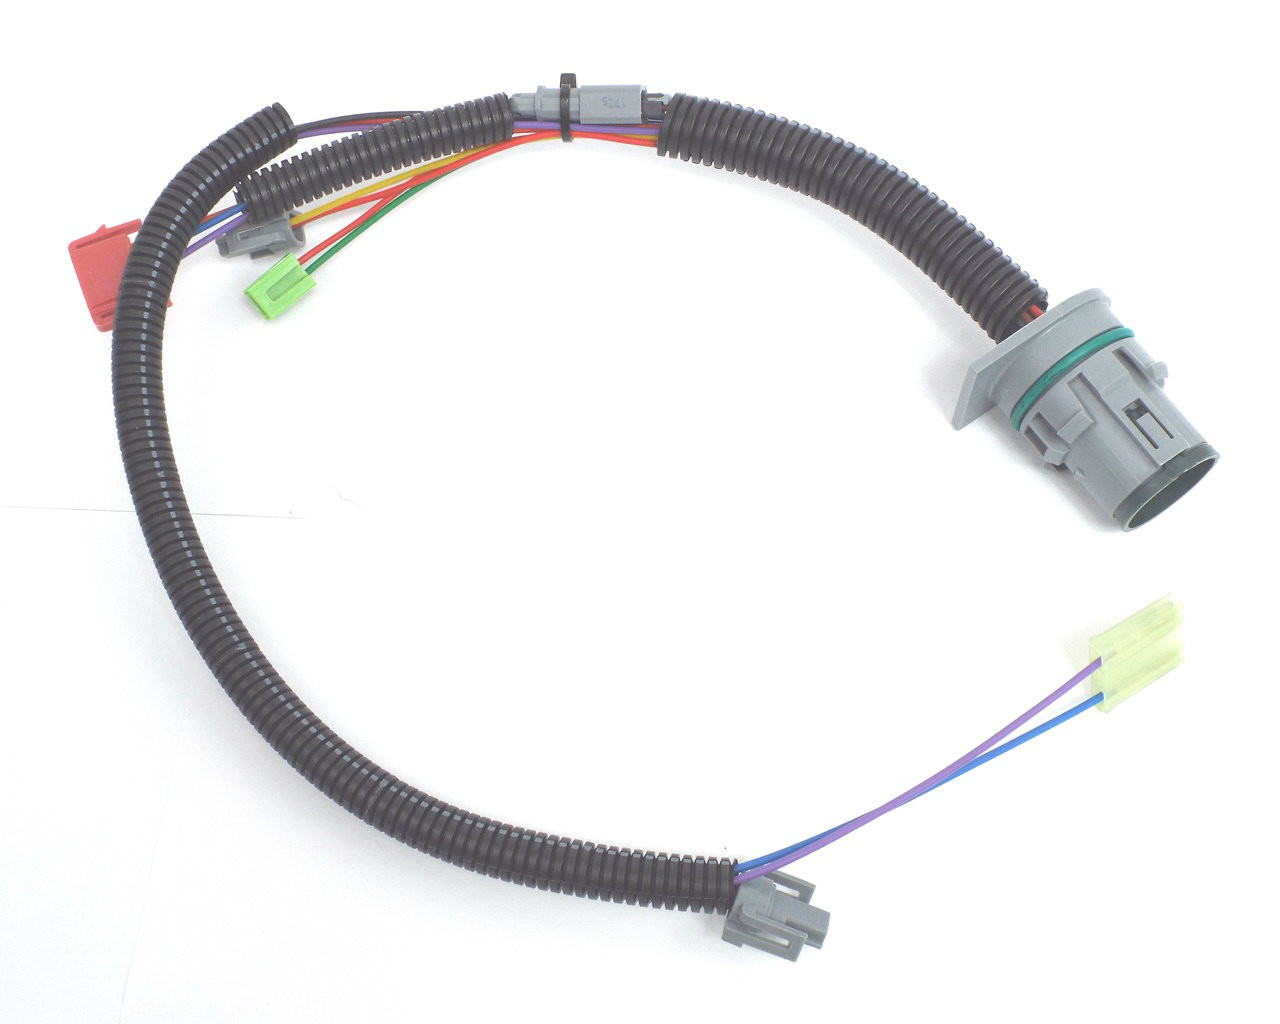 4l80e wiring harness progressive wiring diagramnew 4l80e transmission hd internal valve body wiring harness (1991 2003) 4l60e wiring harness diagram 4l80e wiring harness